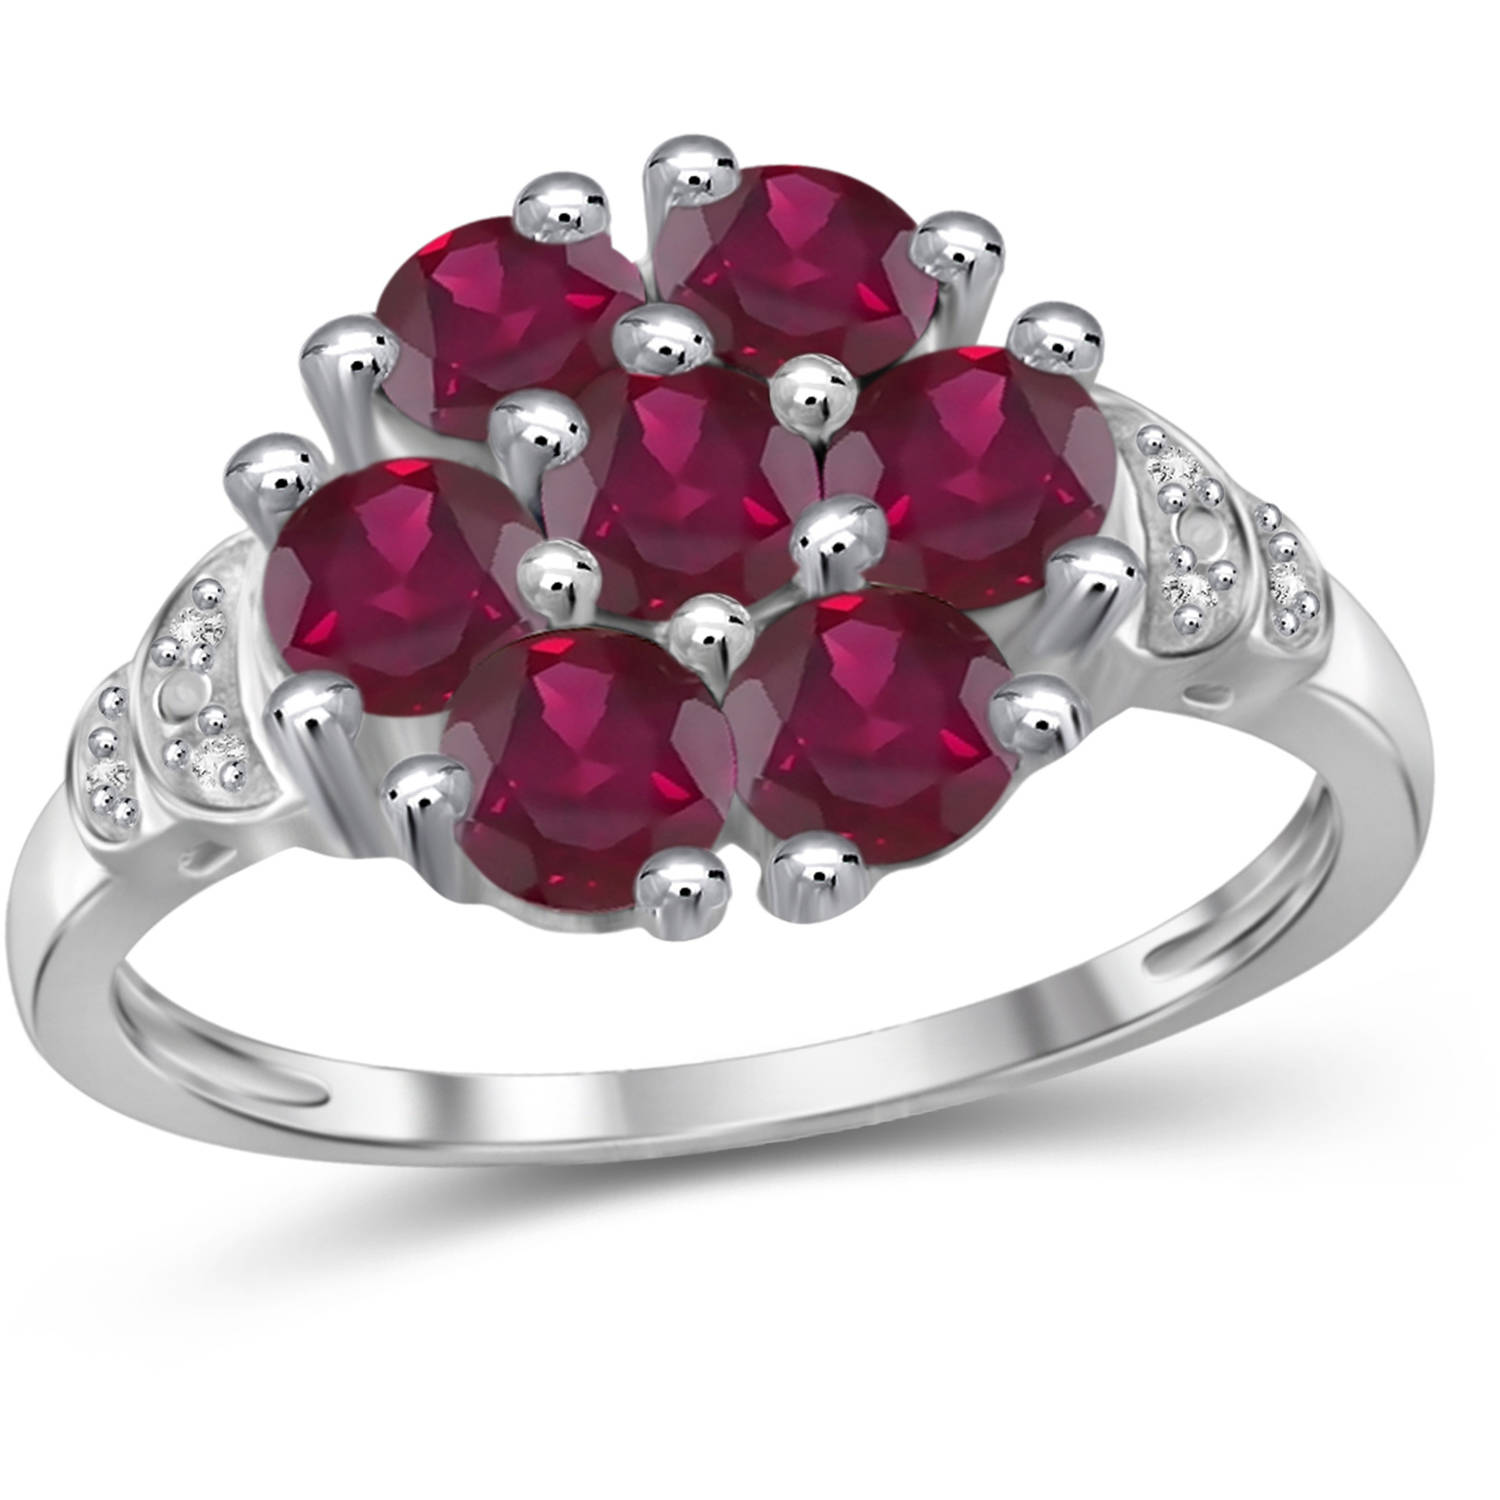 JewelersClub 2.31 Carat T.G.W. Ruby Gemstone And White Diamond Accent Sterling Silver Ring by JewelersClub